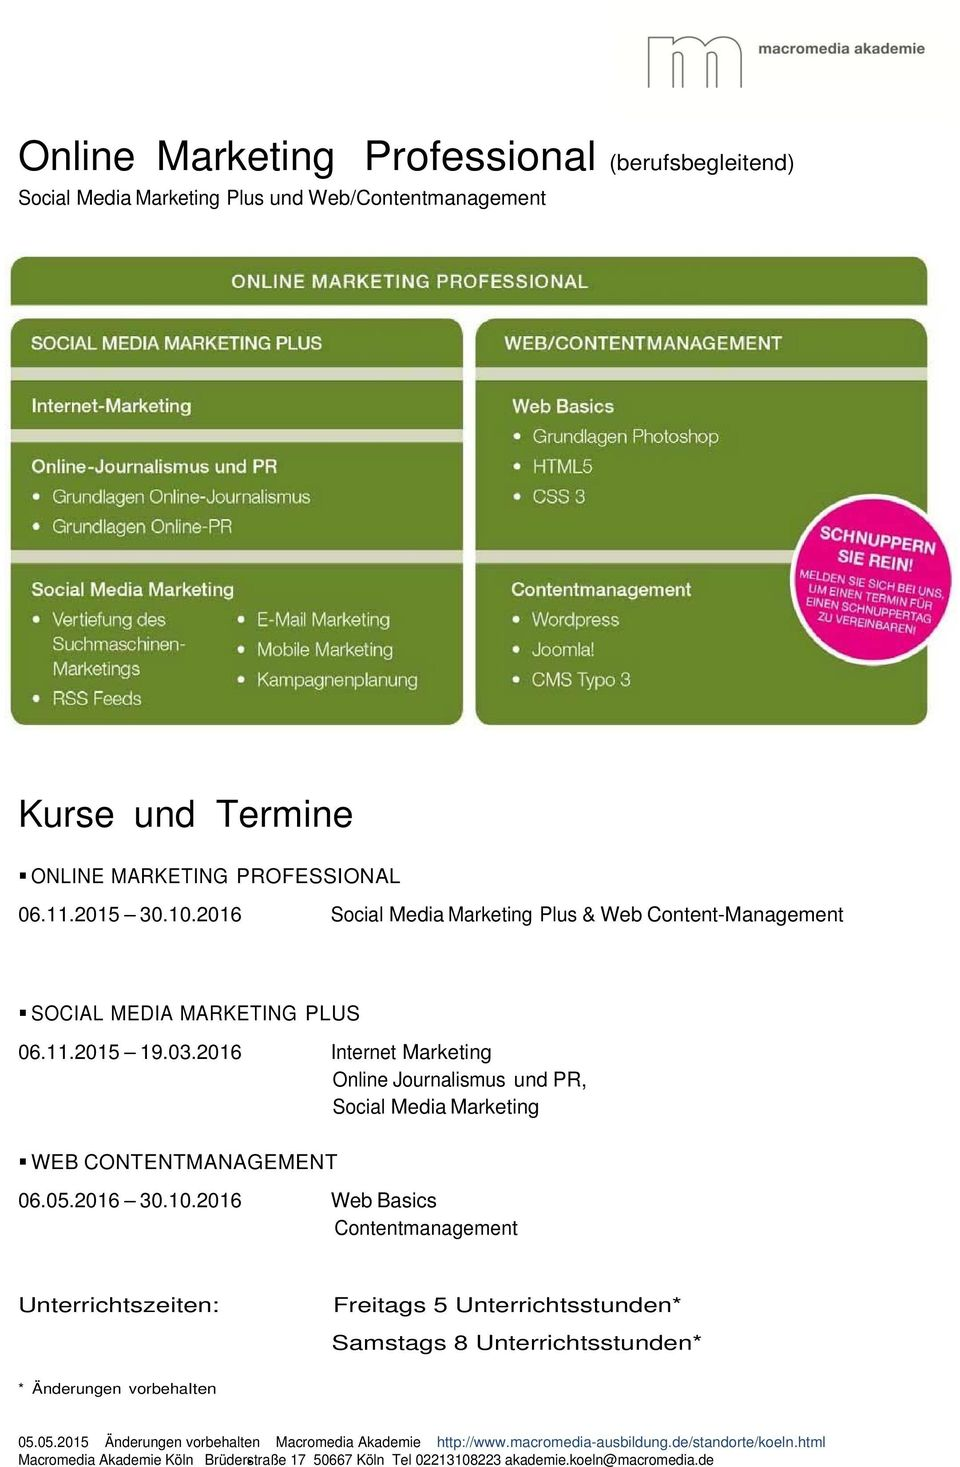 2016 Internet Marketing Online Journalismus und PR, Social Media Marketing WEB CONTENTMANAGEMENT 06.05.2016 30.10.